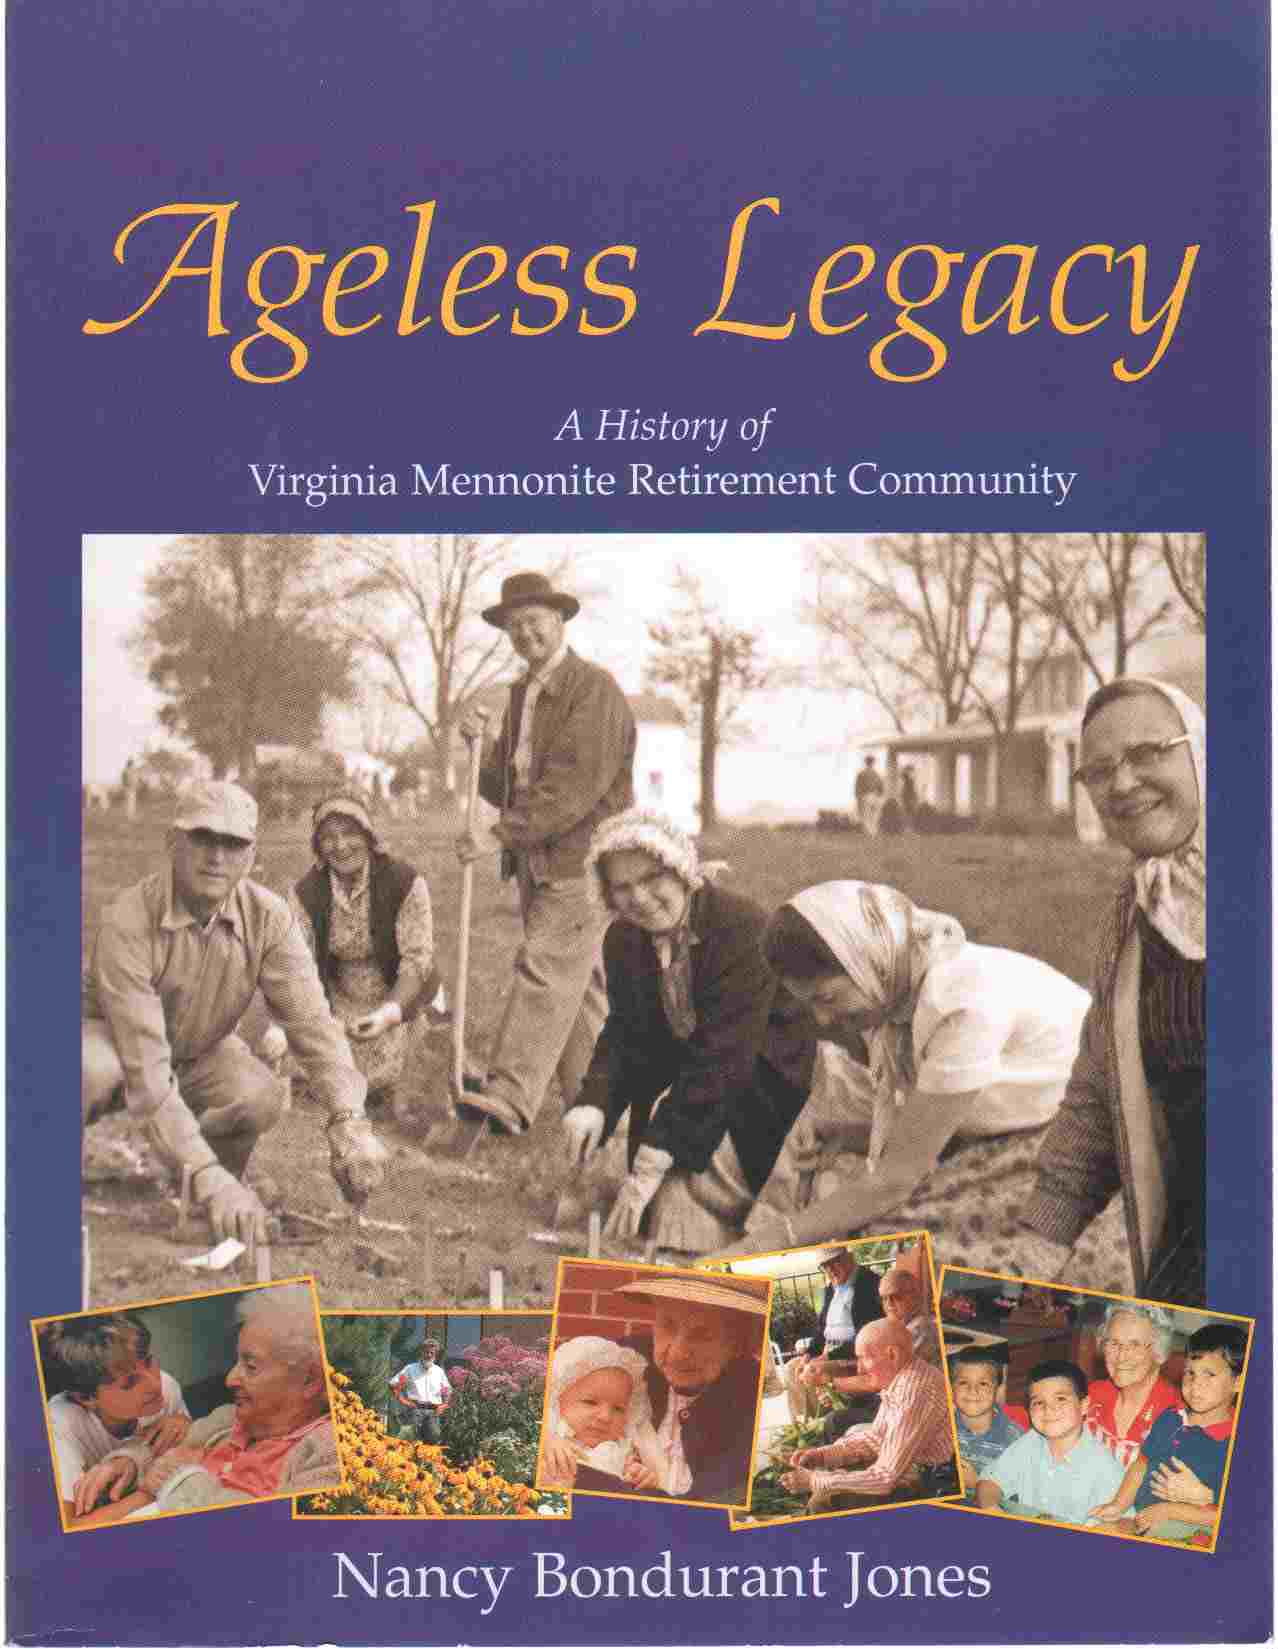 Image for AGELESS LEGACY A History of Virginia Mennonite Retirement Community